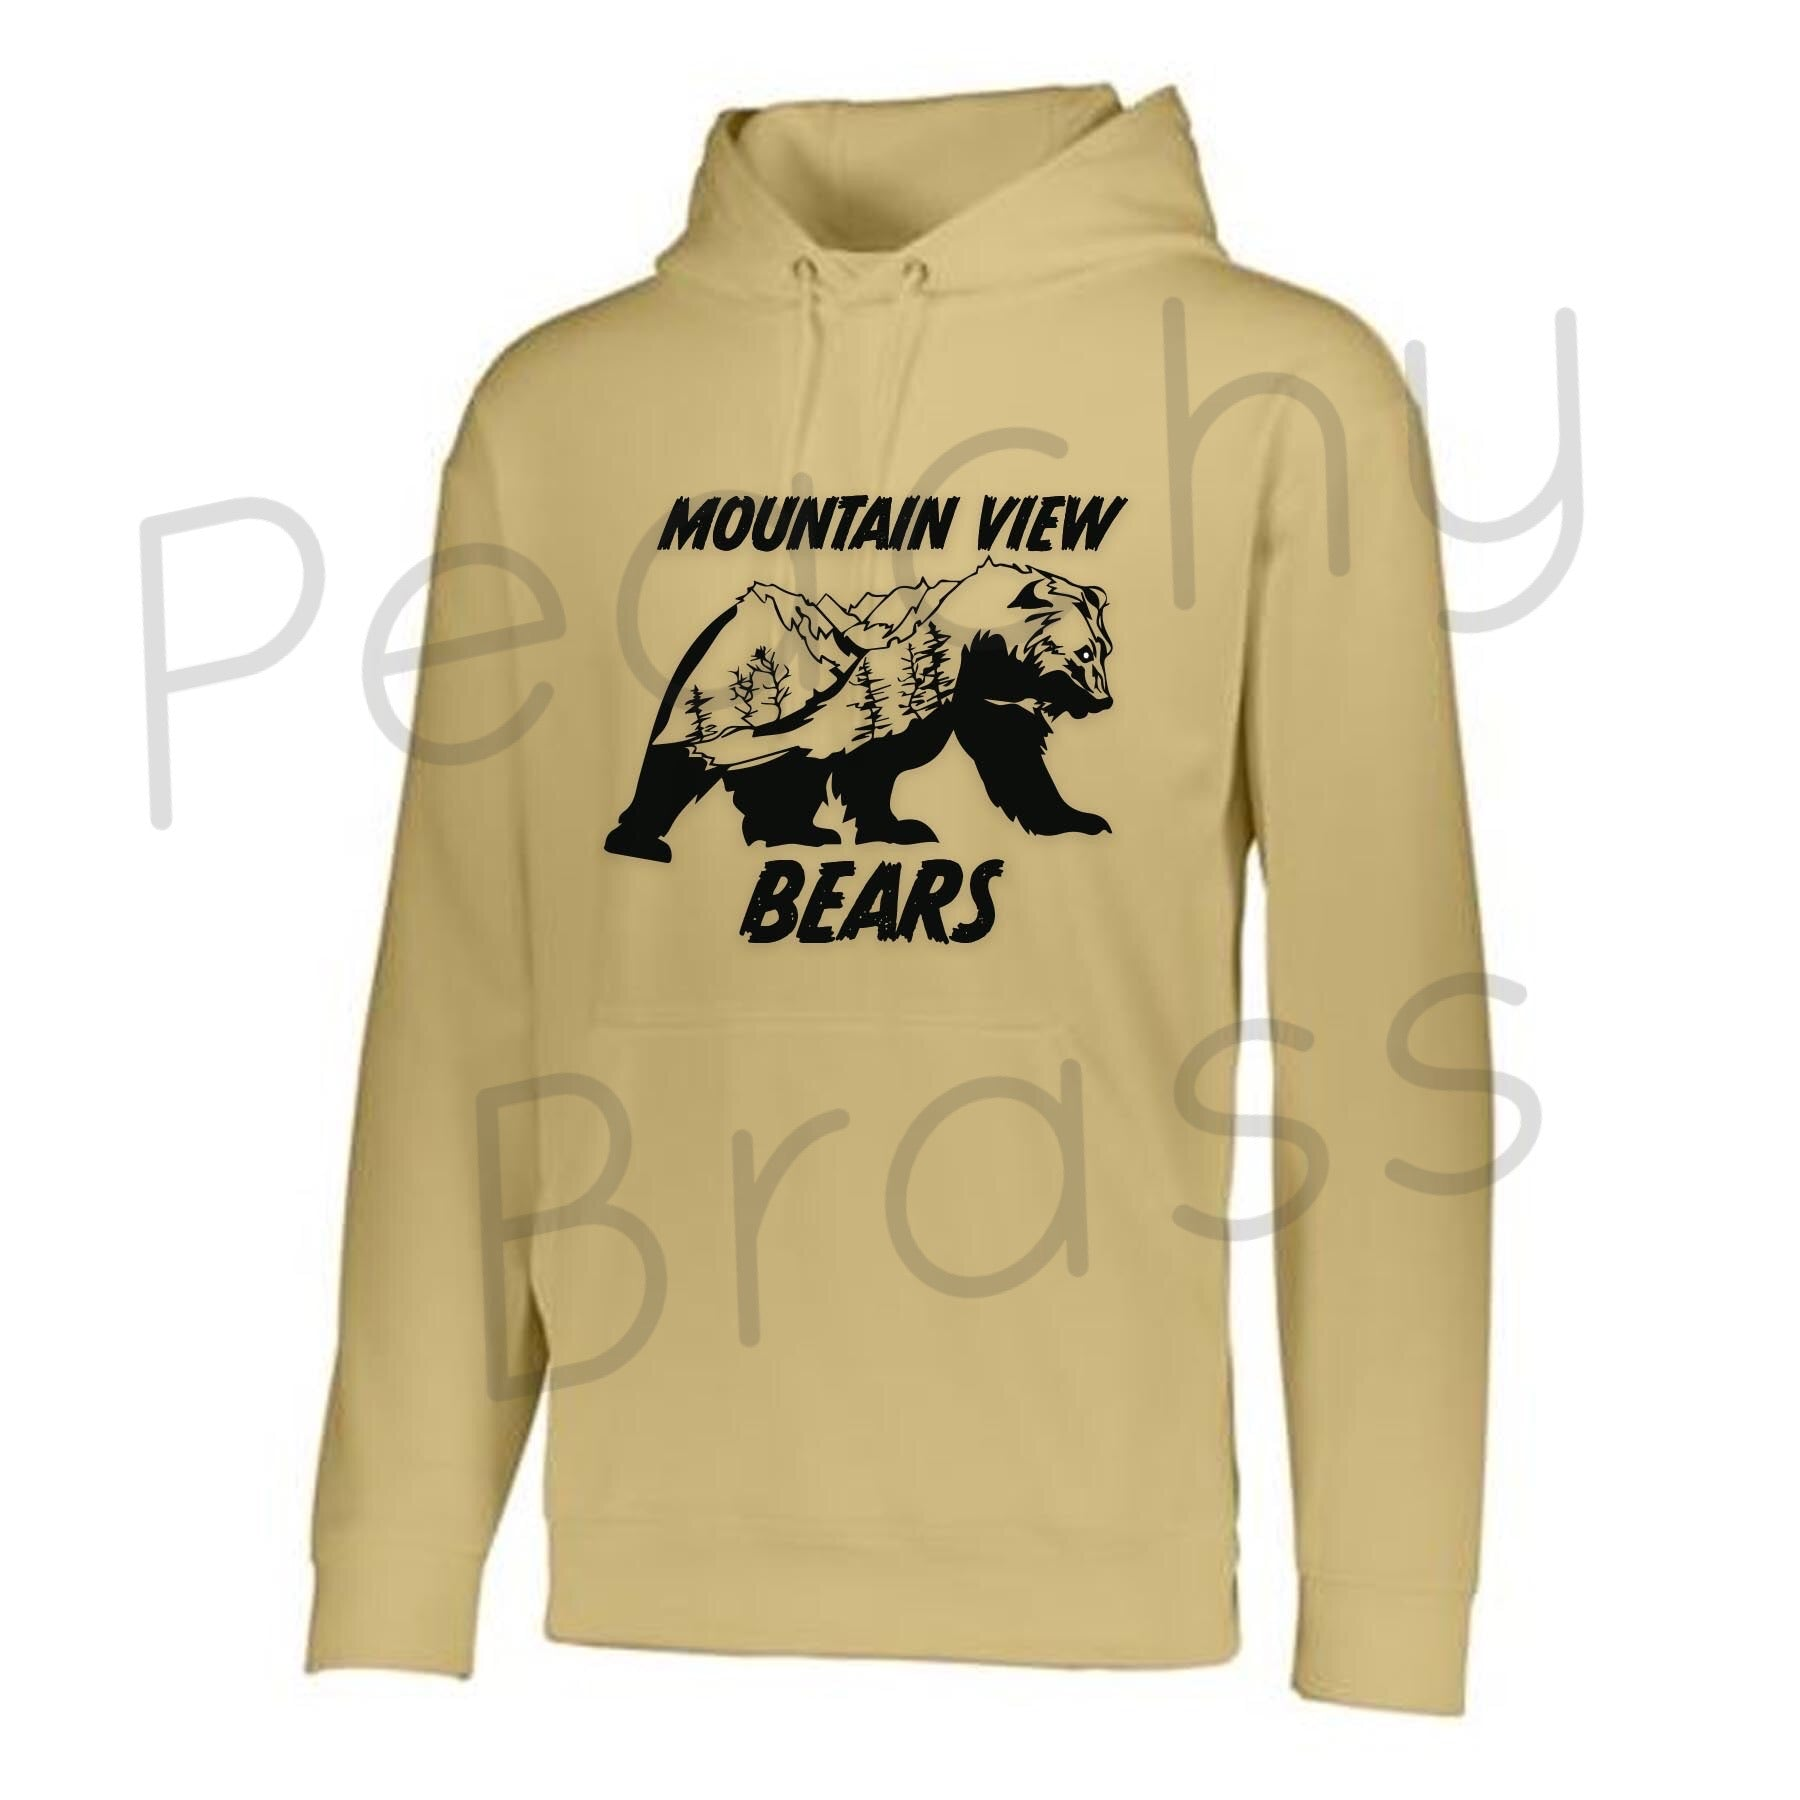 Mountain View Bears (Gold) Hoodie, Hoodie - Peachy Brass